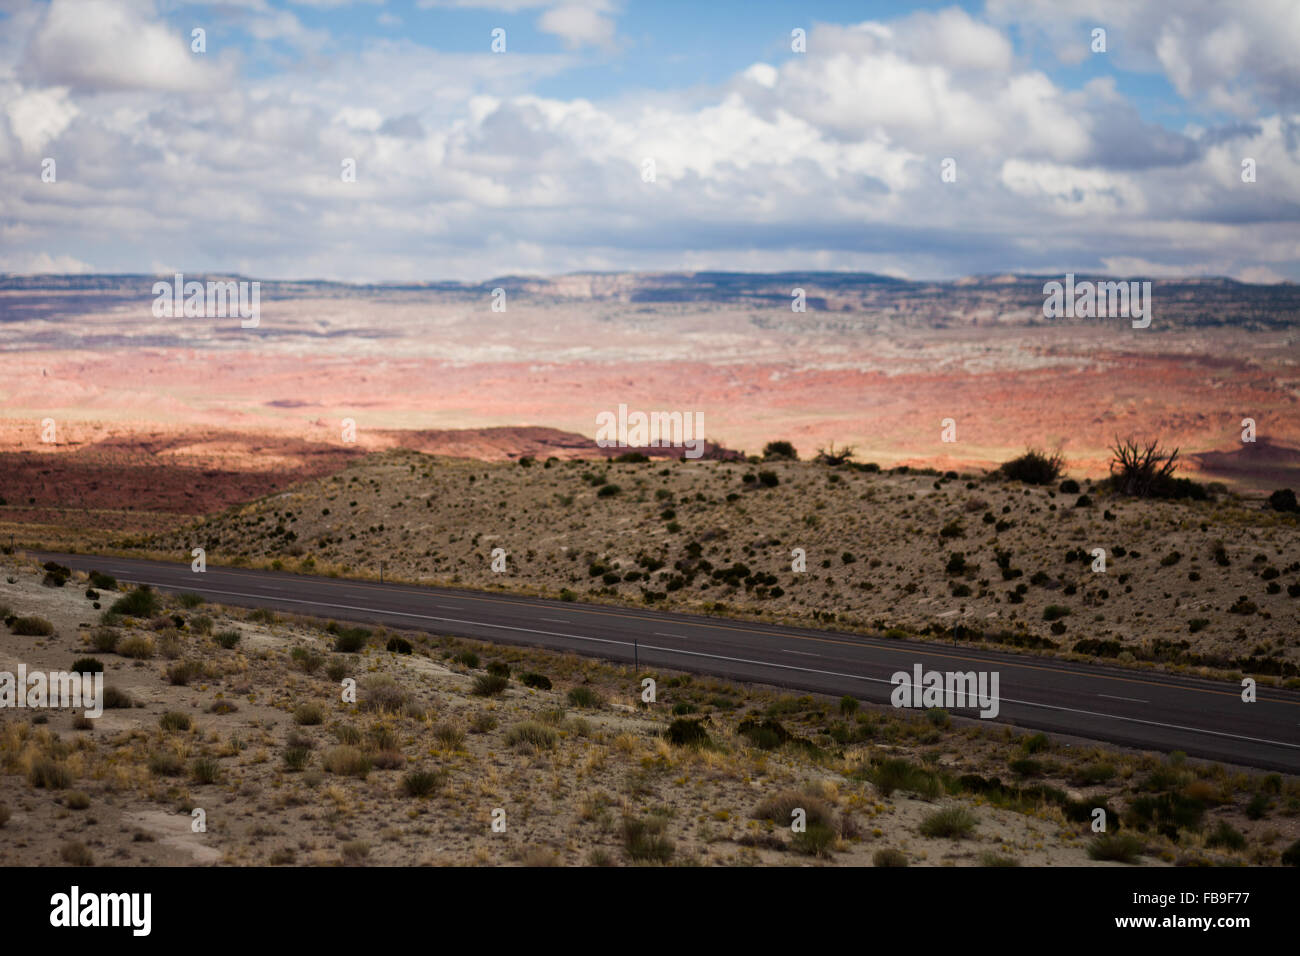 Highway through the desert with partly cloudy sky, Utah - Stock Image